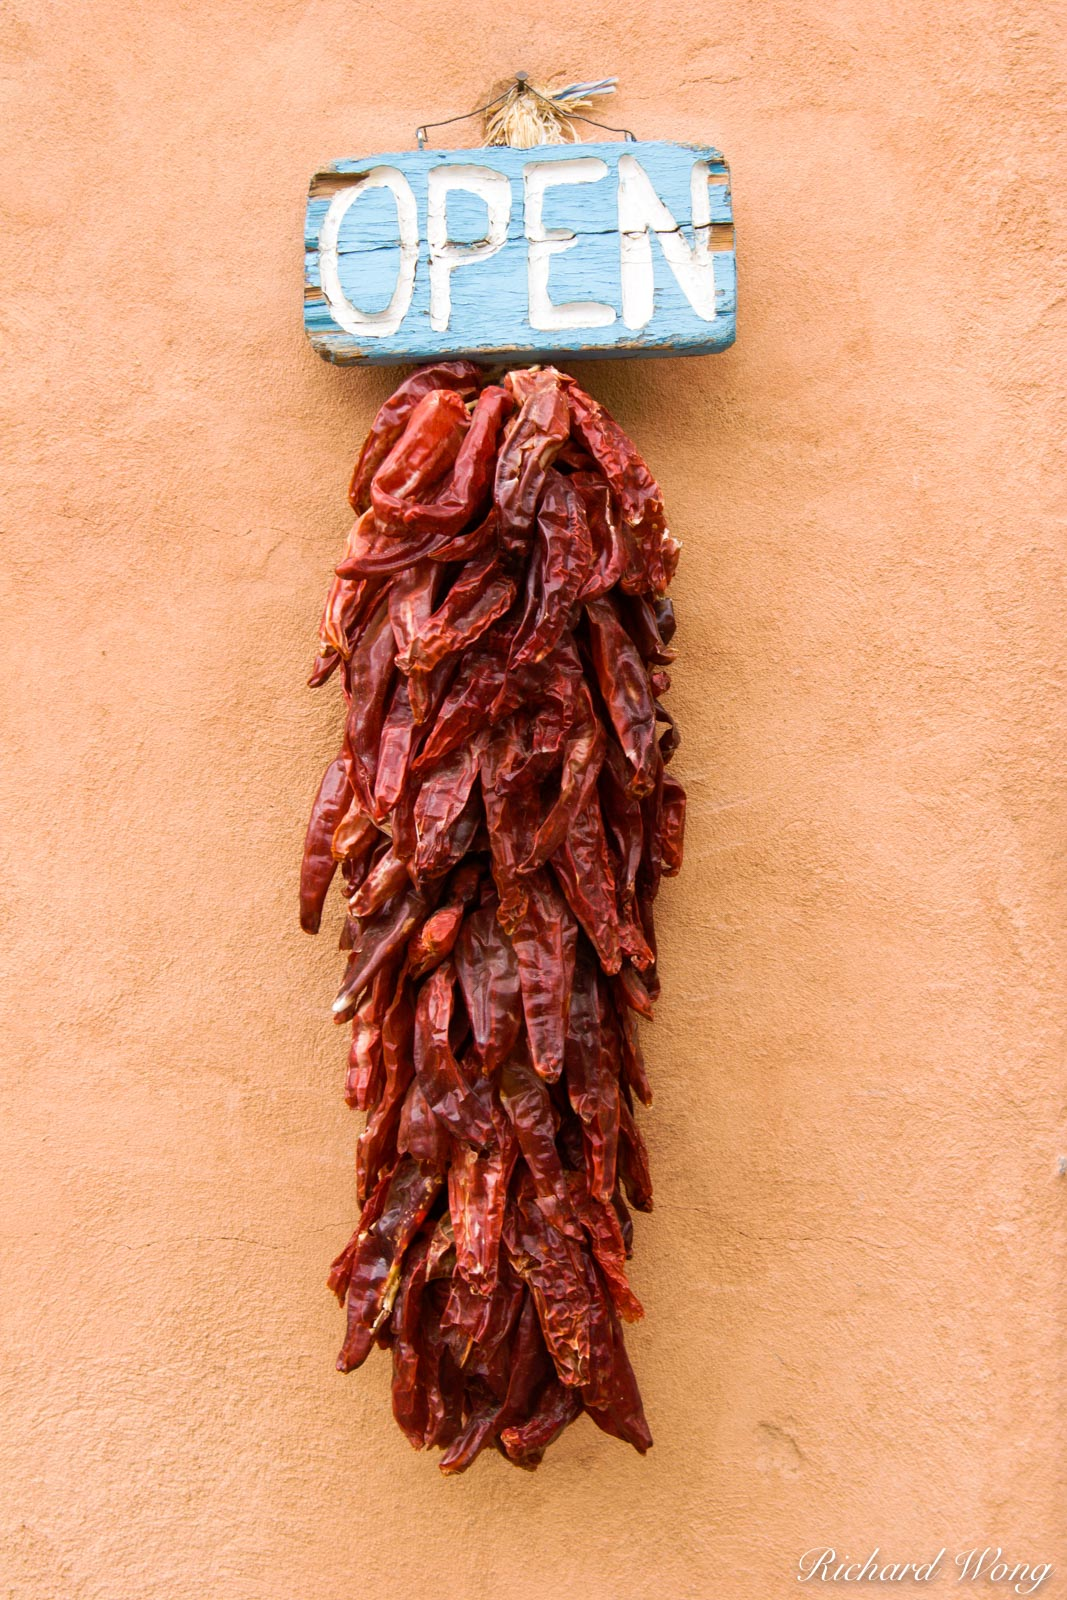 Red Chili Peppers, Taos Plaza, New Mexico, photo, photo